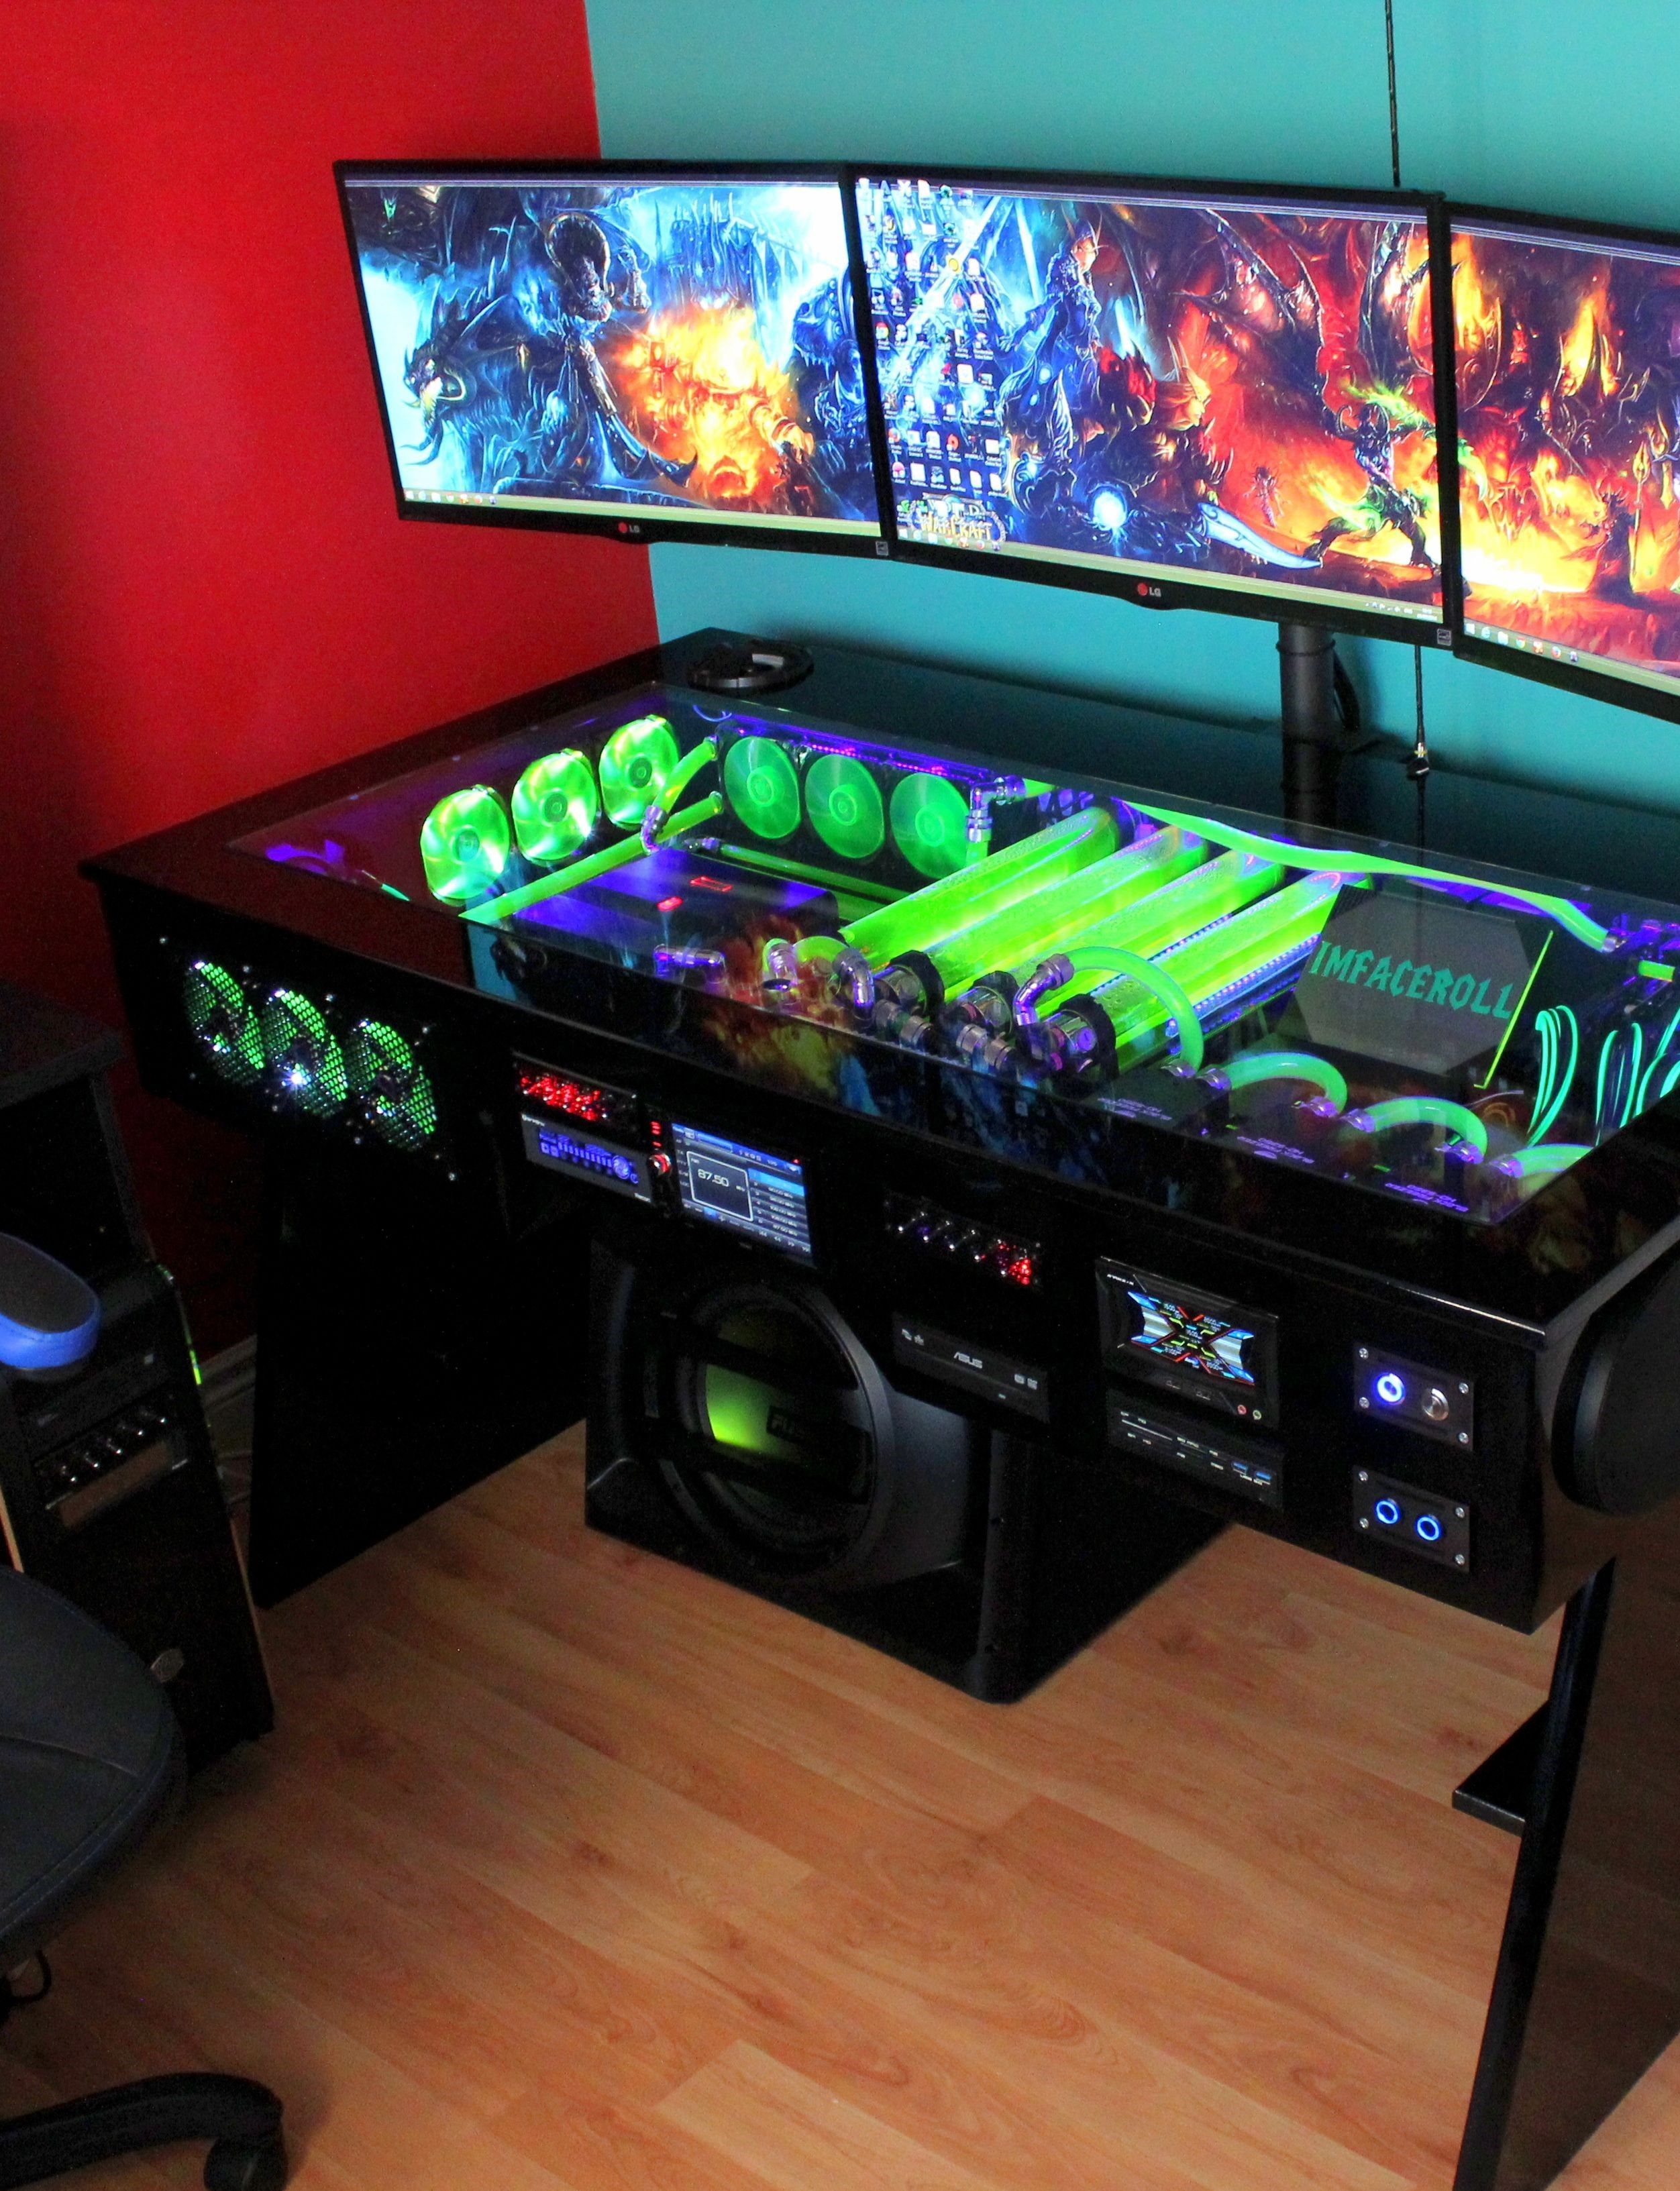 21 Diy Computer Desk Ideas You Can Build Now Gamingdesk Perfect Computer Desk Ideas On This Favorite Site Diy Computer Desk Gaming Computer Desk Computer Diy